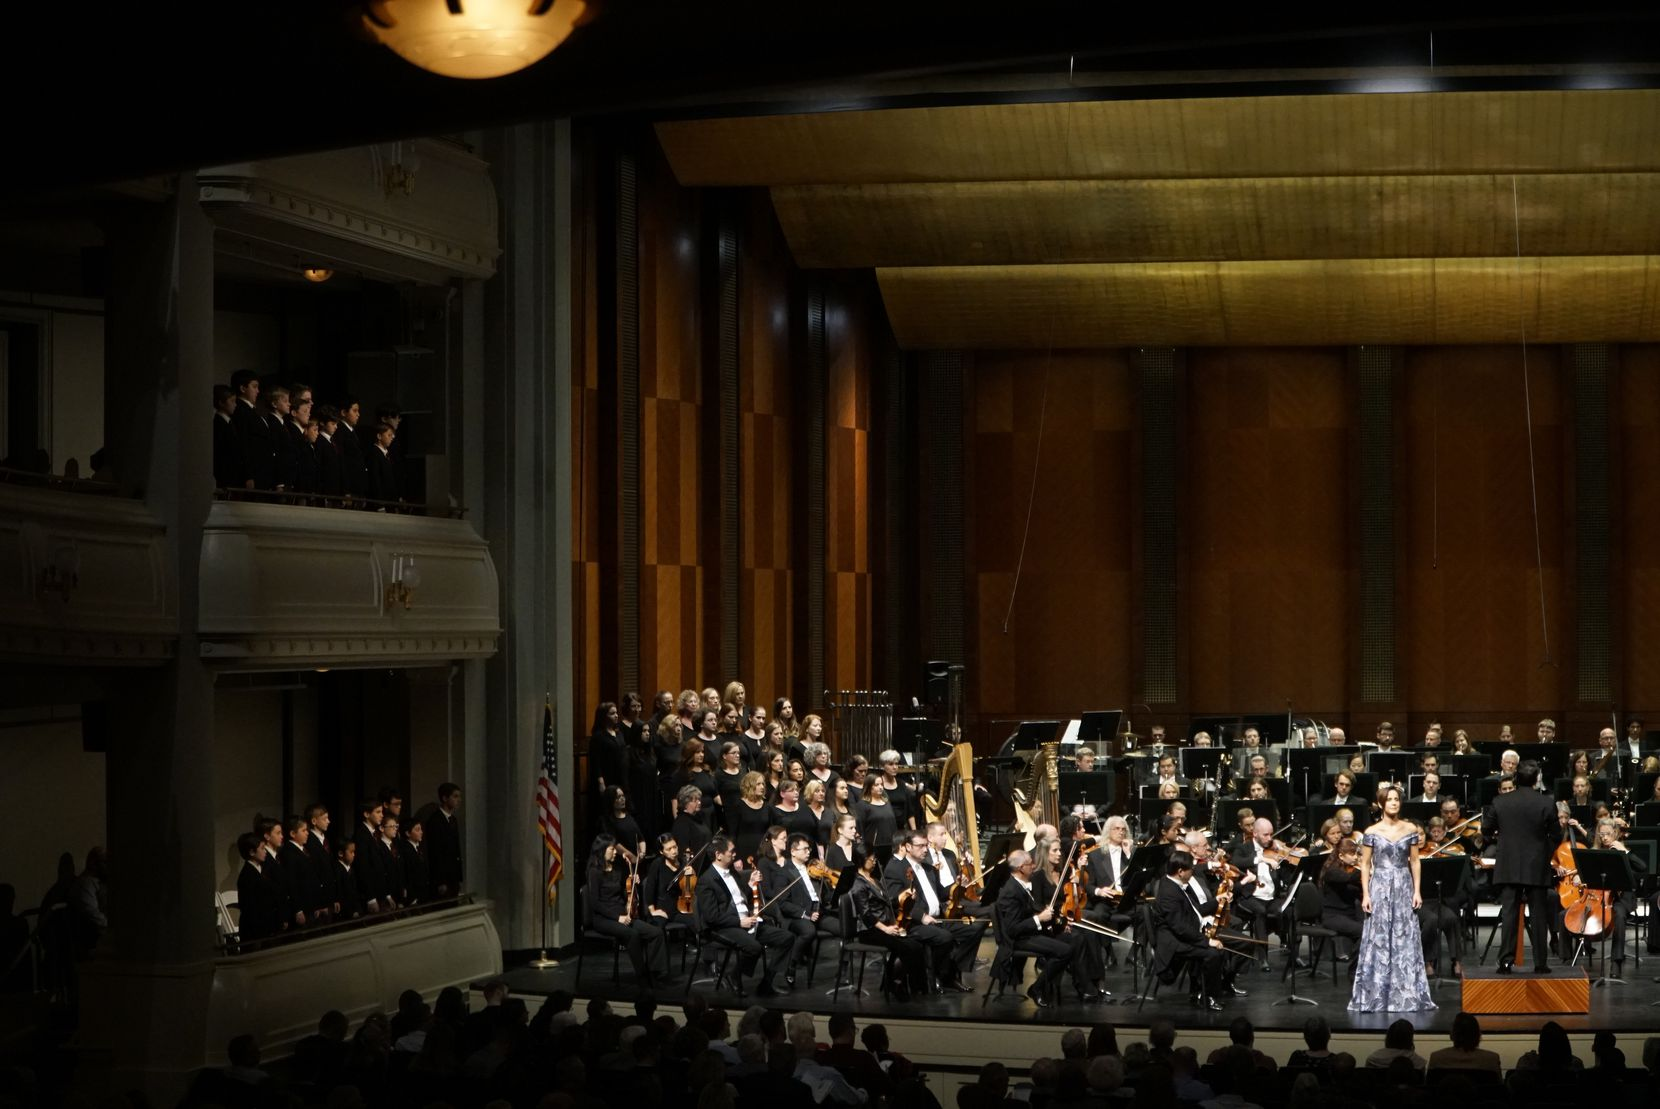 The Fort Worth Symphony Orchestra performs Mahler's Third Symphony with Soloist Kelley O'Connor and The Texas Boys Choir at Bass Performance Hall in Fort Worth, Texas on Friday October 11, 2019.